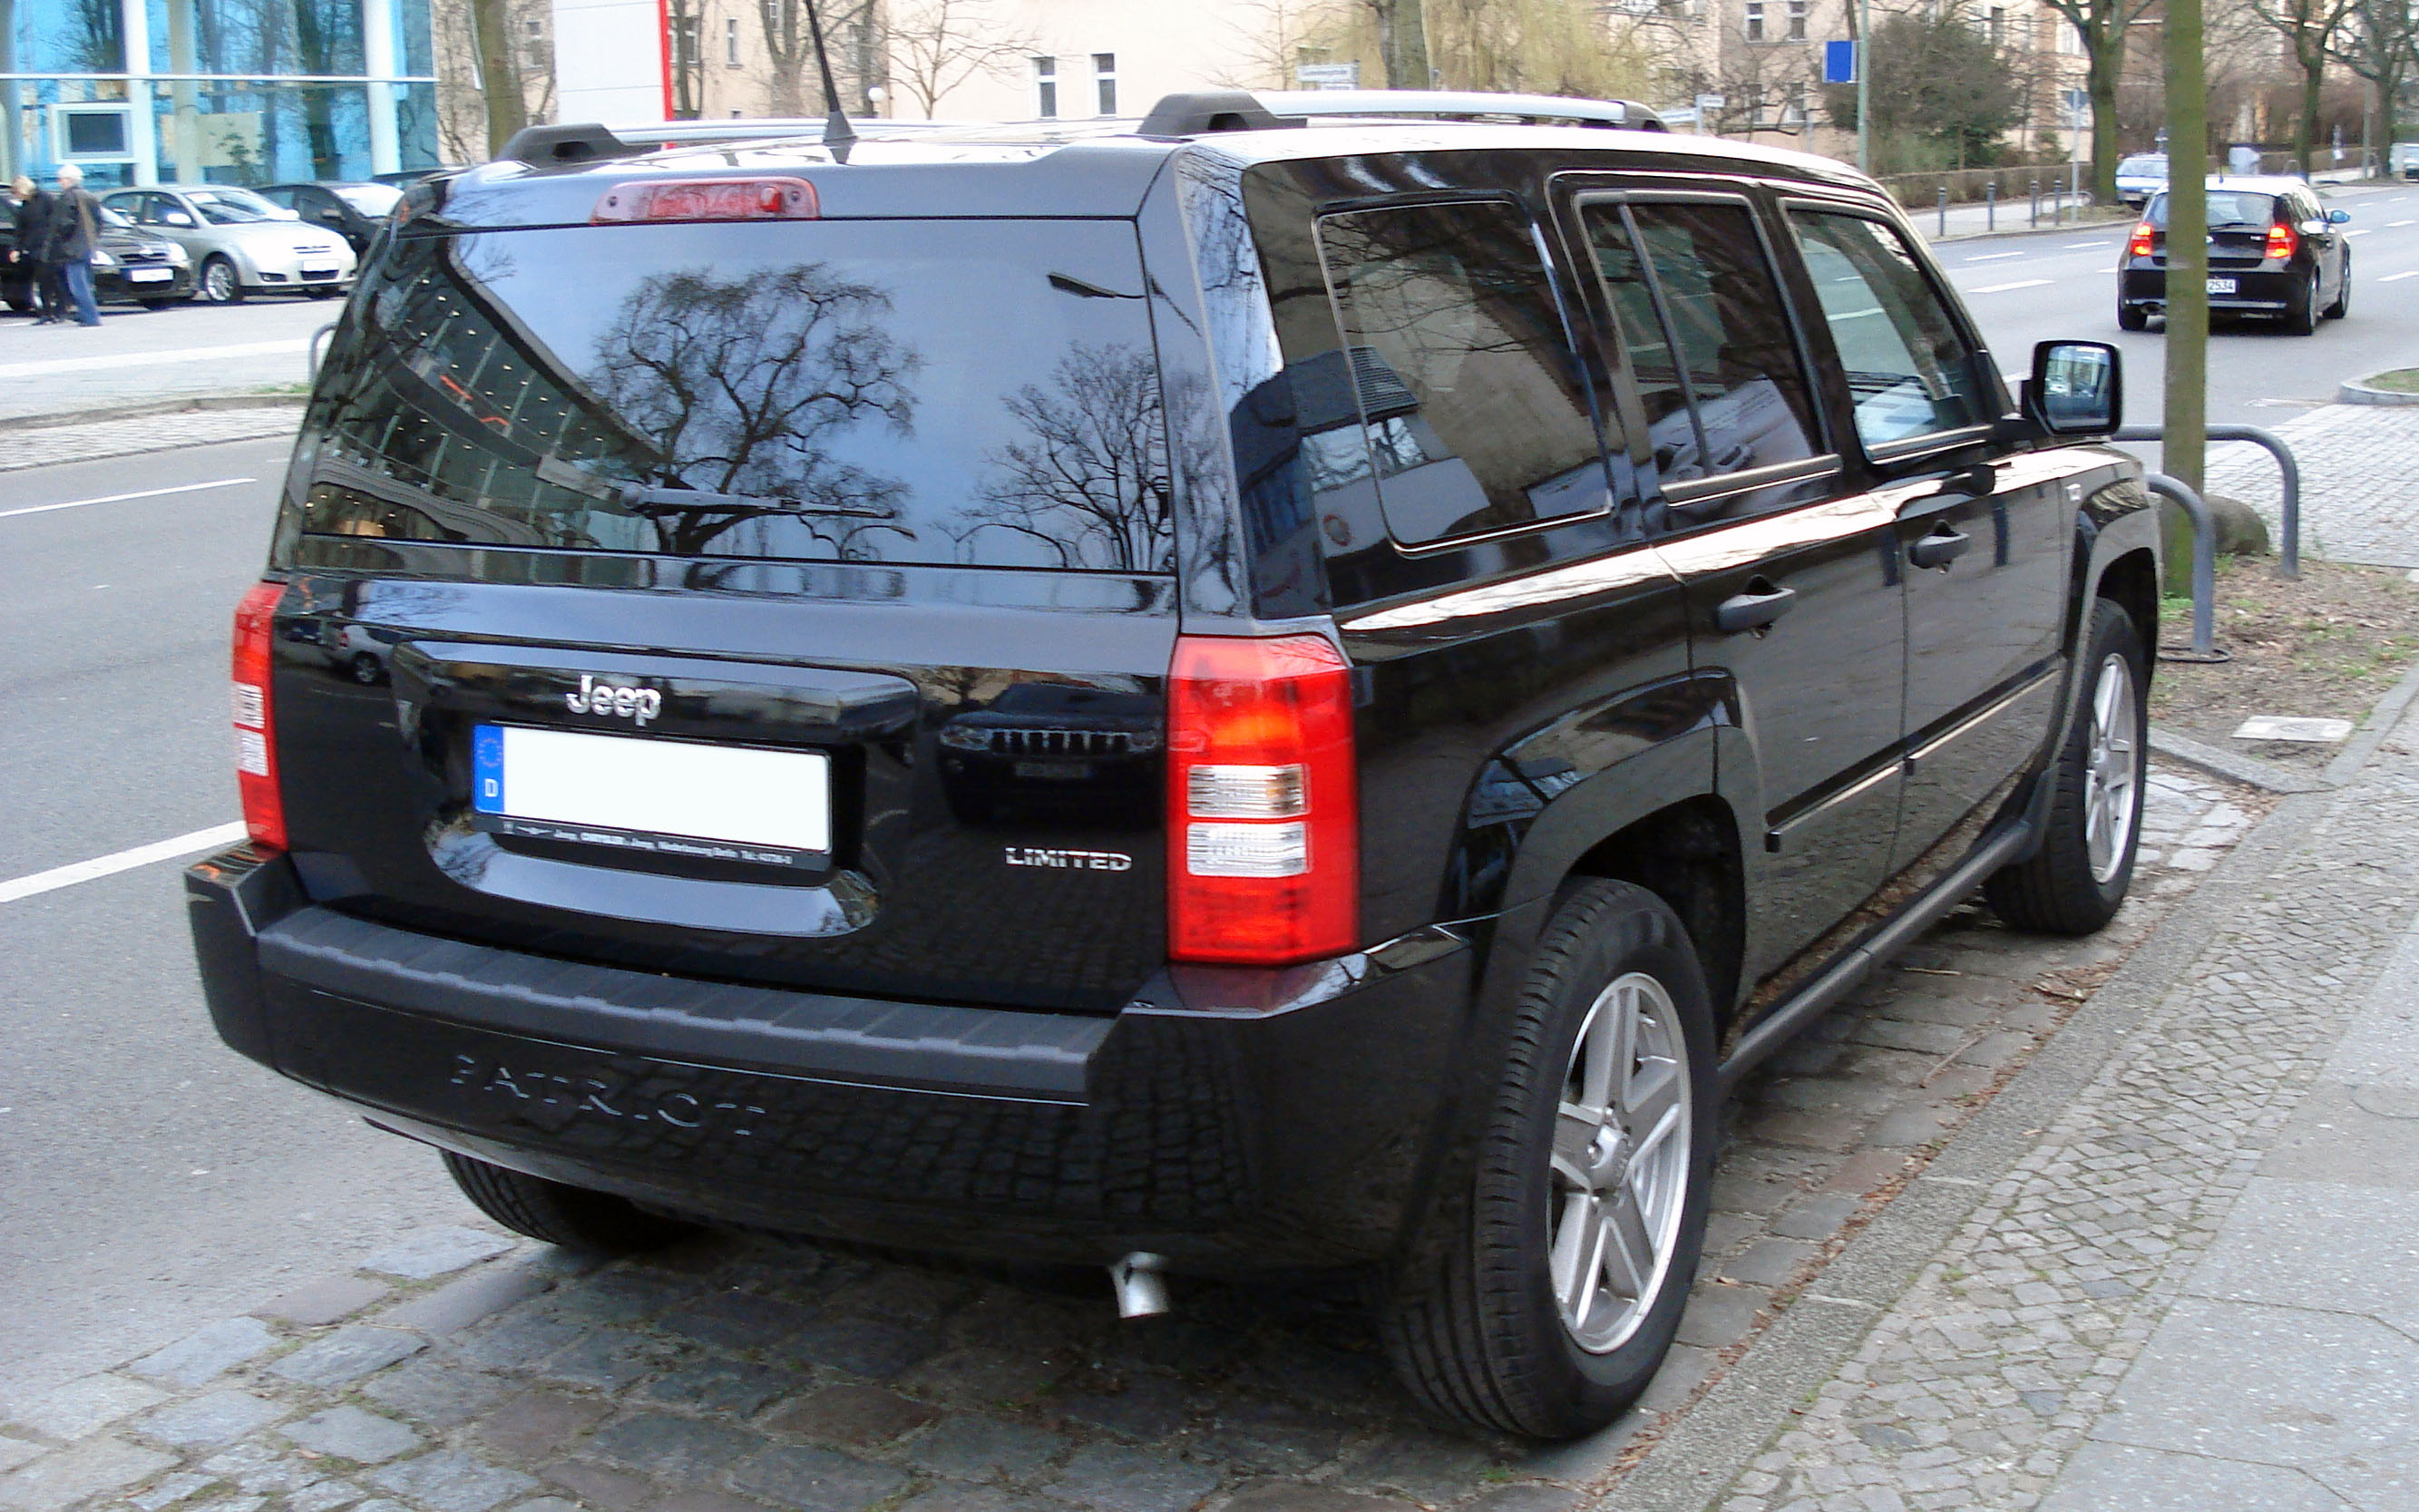 file:jeep patriot black rr - wikimedia commons